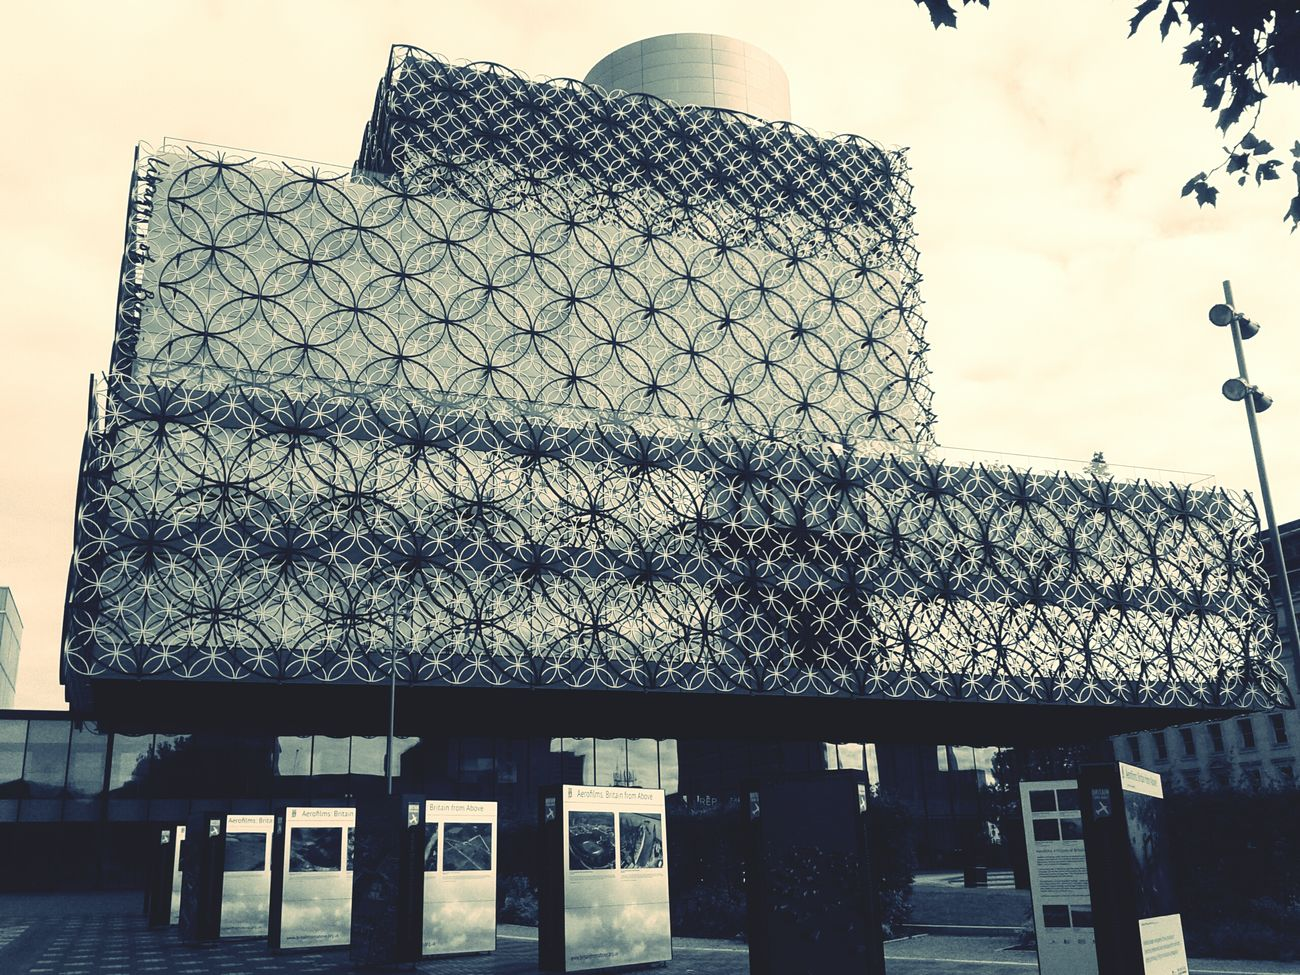 Birmingham Library SpaceShip